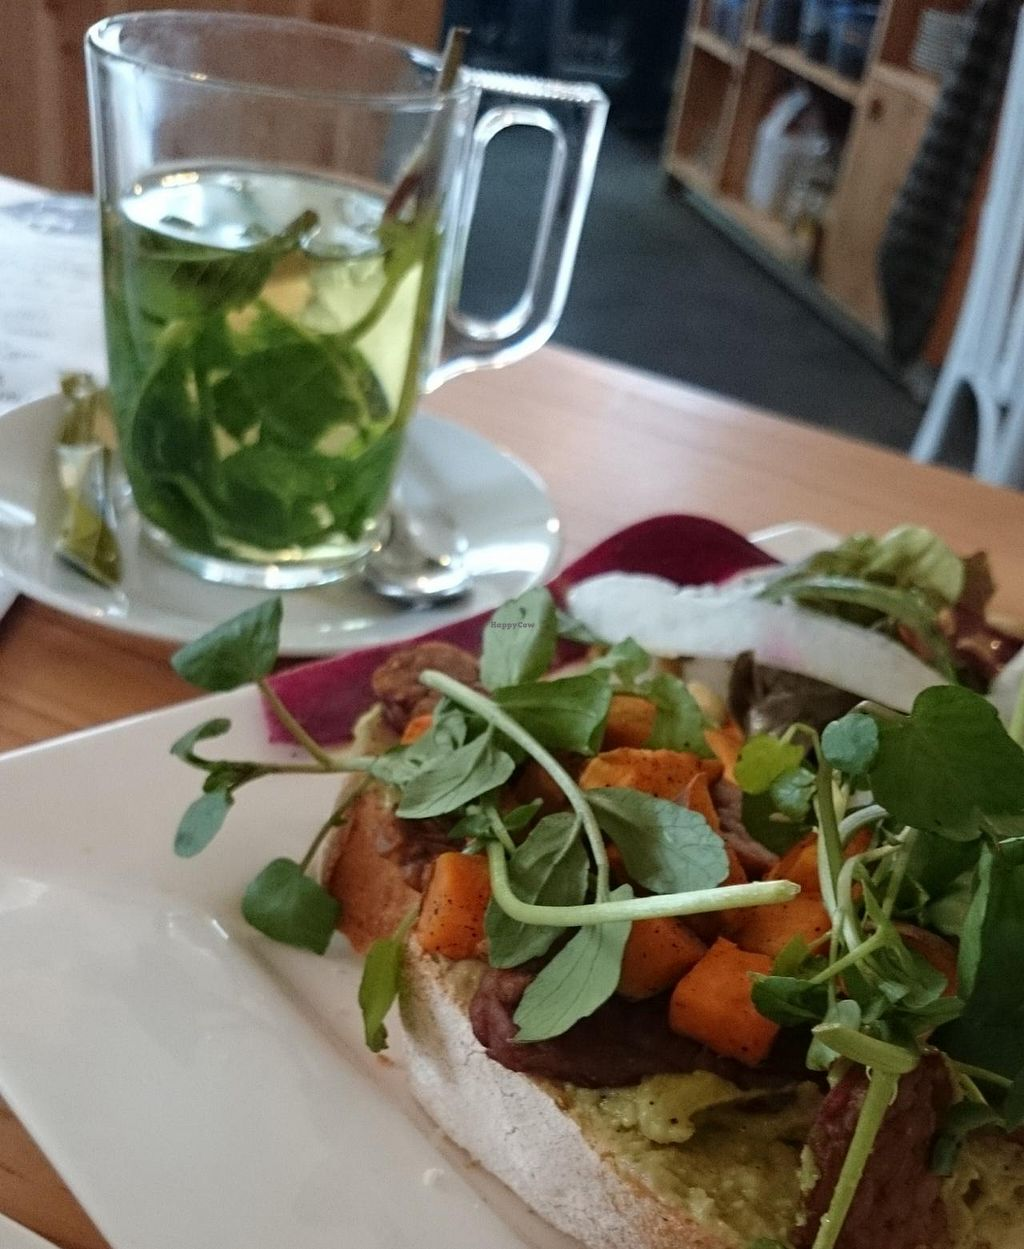 """Photo of GYS  by <a href=""""/members/profile/v_mdj"""">v_mdj</a> <br/>Sandwich with tempeh and avocado <br/> February 6, 2015  - <a href='/contact/abuse/image/53767/92362'>Report</a>"""